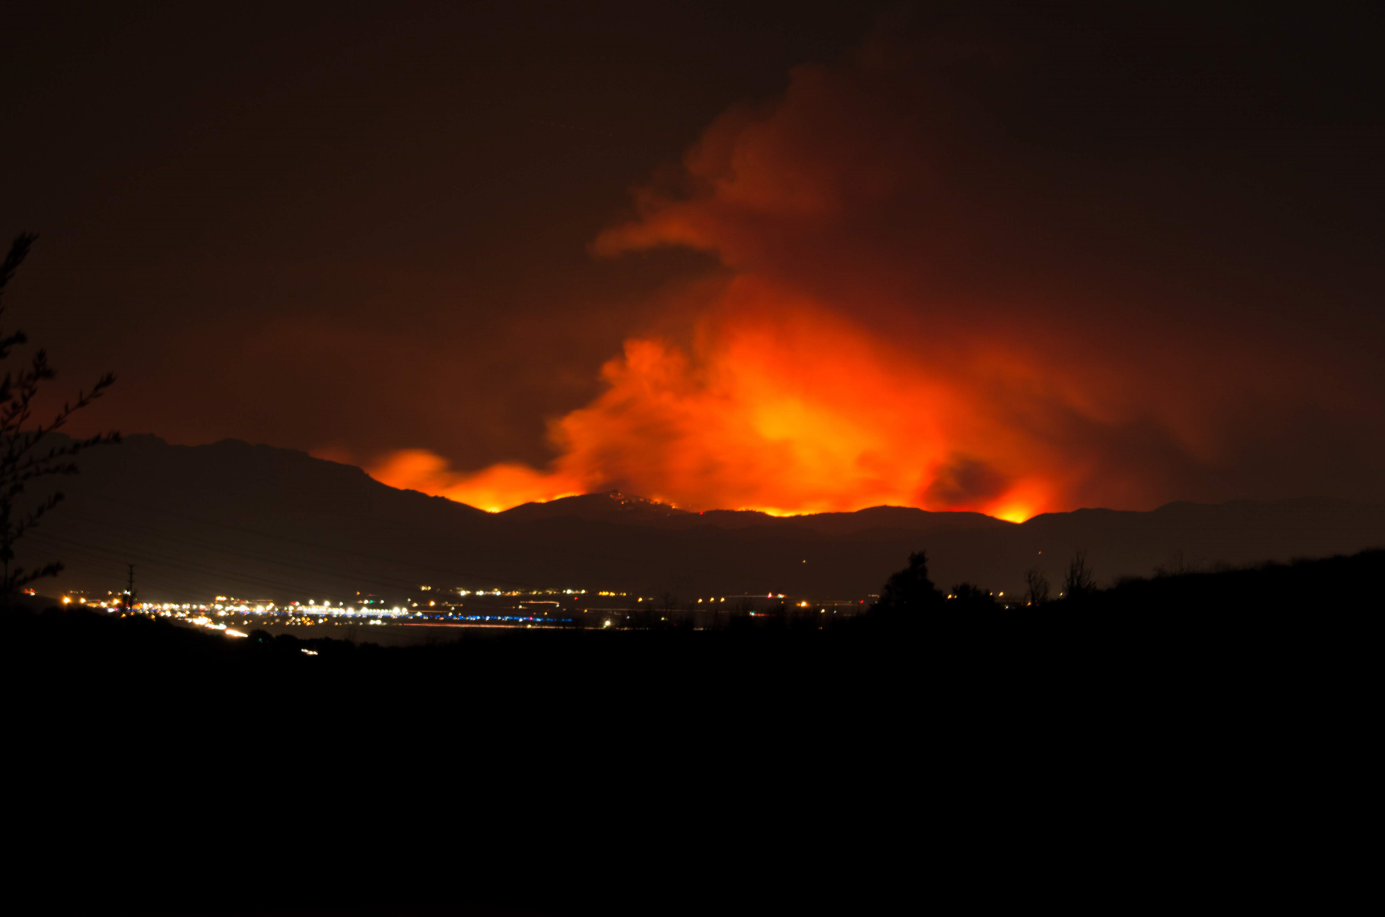 Infernos rage in the hills above Camarillo, pulsating in brightness as wind conditions fuel the fire. Credit: Stefan Fahr / The Foothill Dragon Press